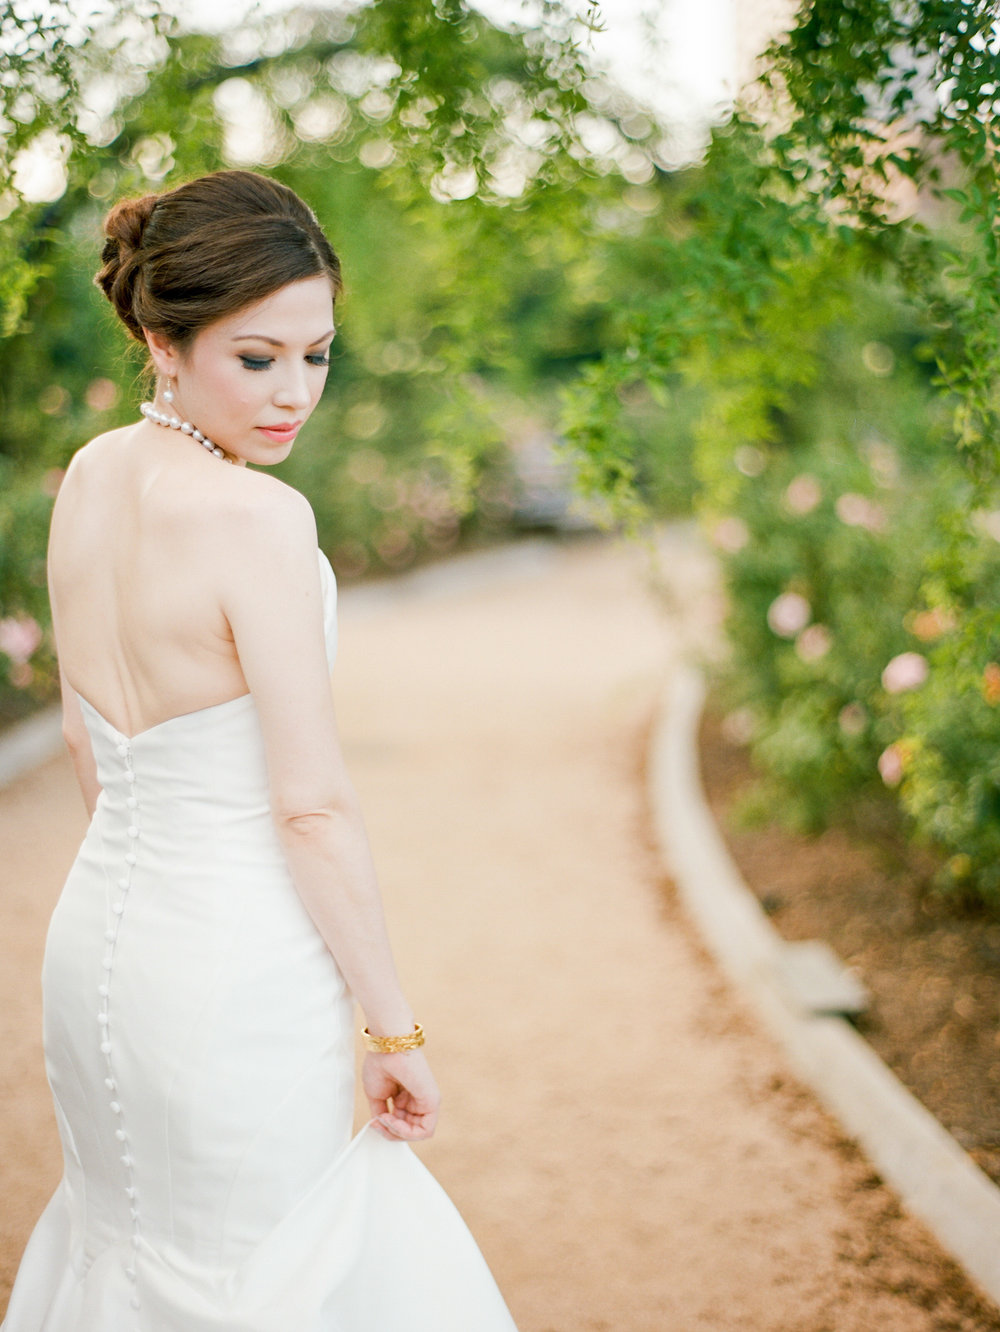 mcgovern-centennial-gardens-wedding-houston-wedding-photographer-bridals-film-austin-wedding-photographer-3.jpg